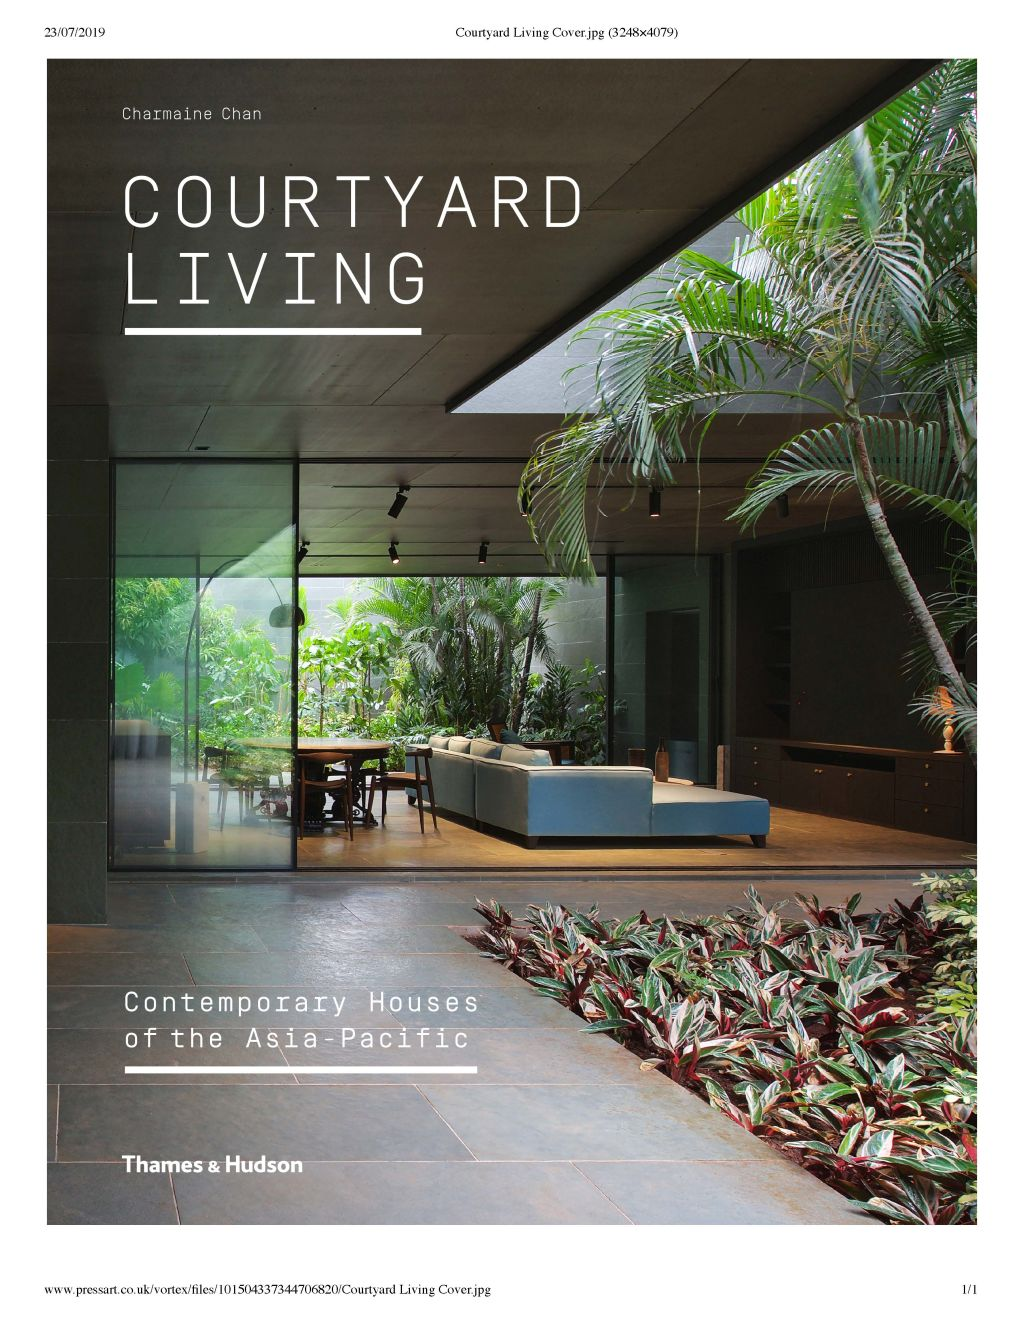 Courtyard Living: Contemporary Houses of the Asia-Pacific (Thames & Hudson), by Charmaine Chan.